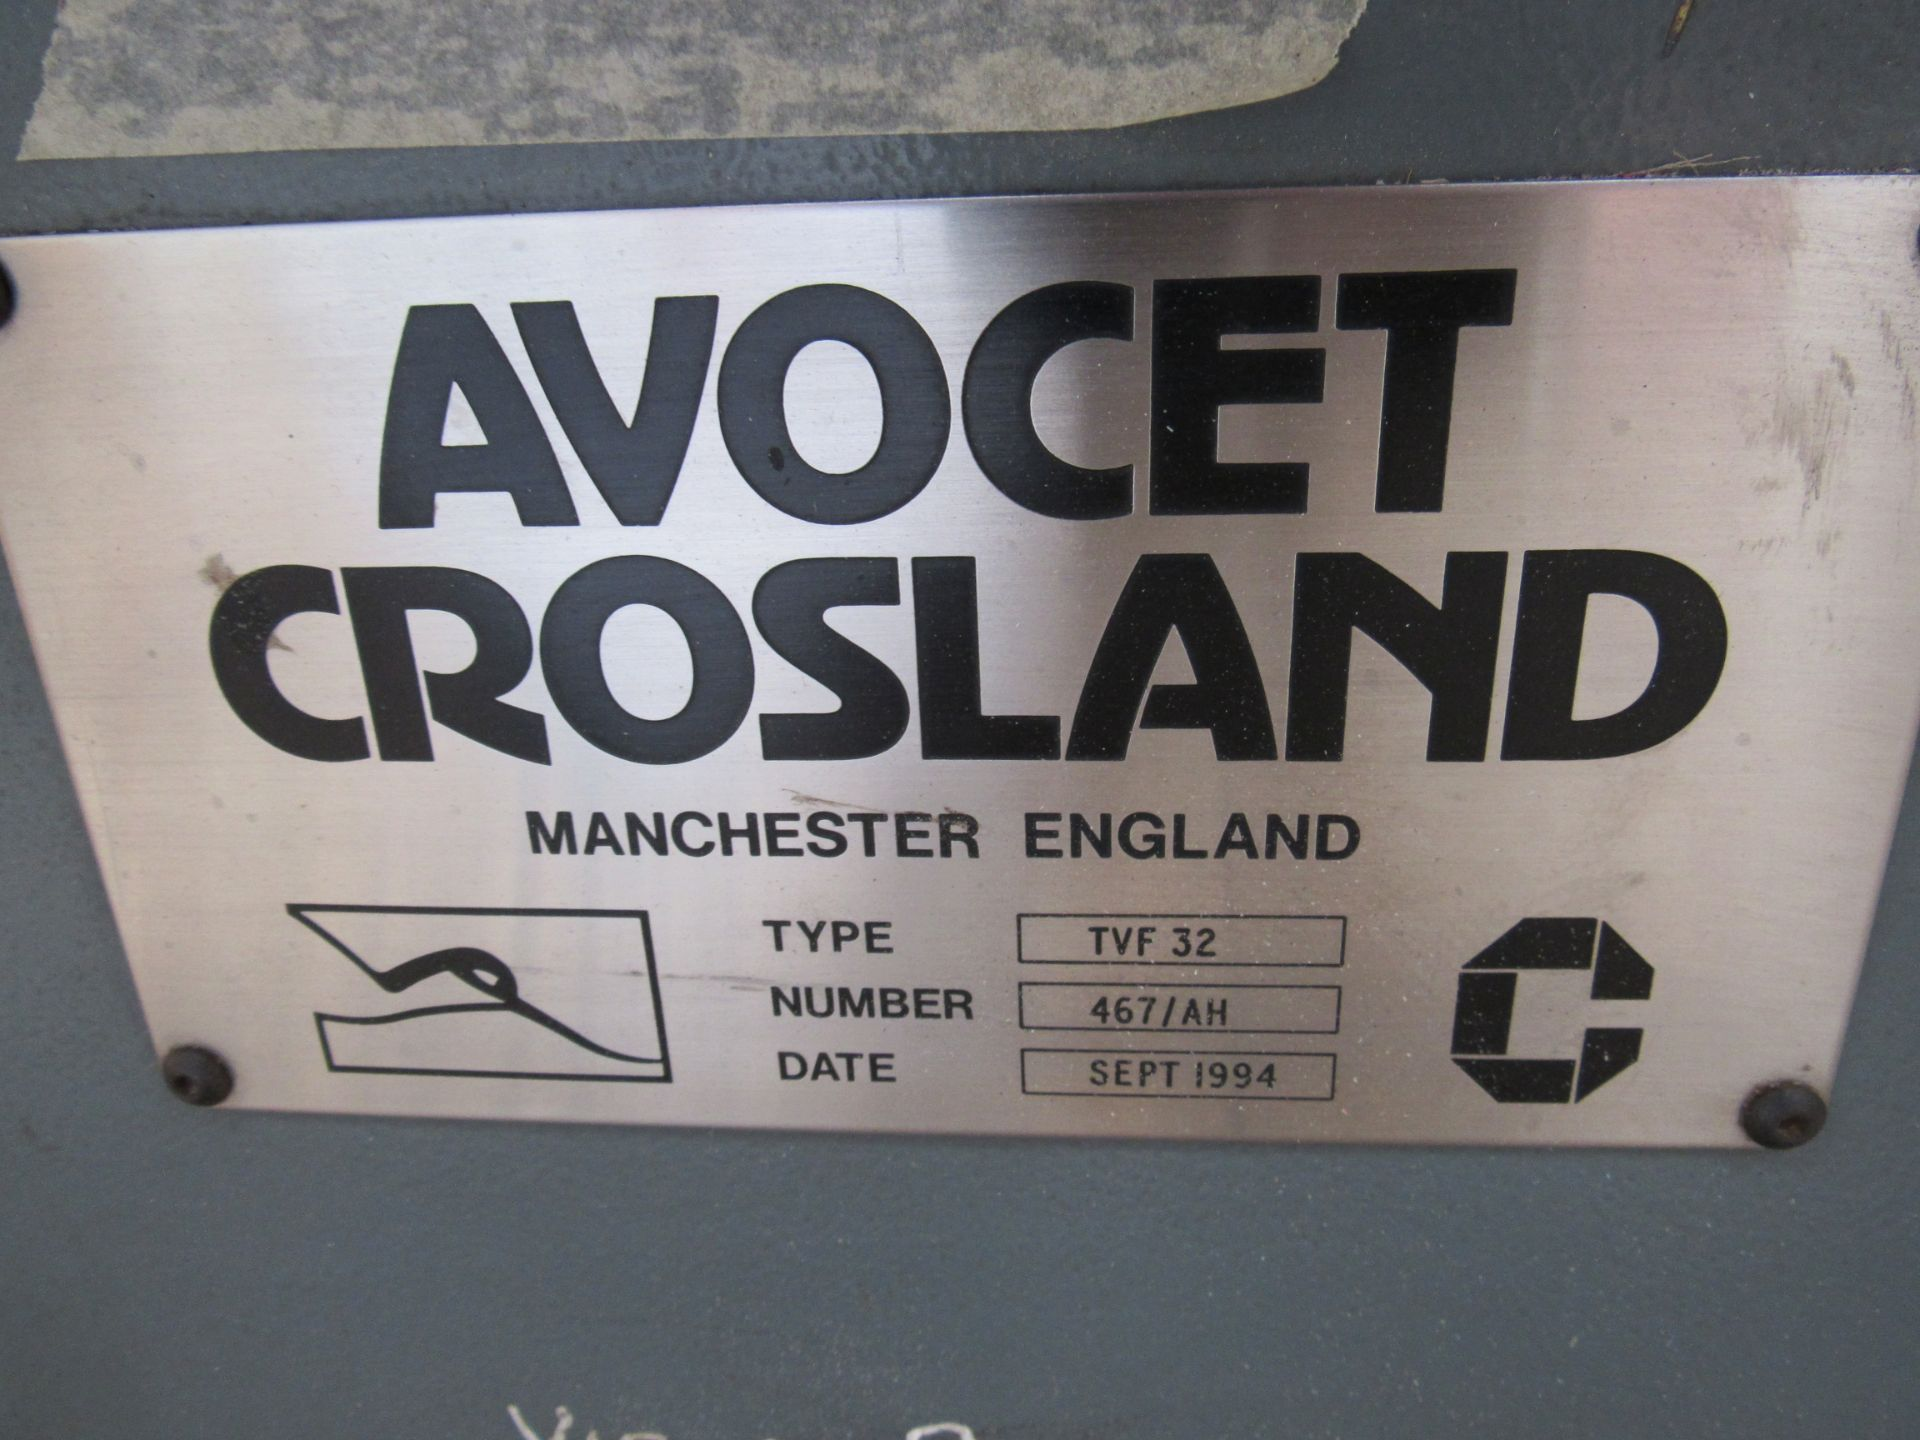 Avocet Crosland TVF 32 Cut and Crease Platen, 1690 x 1220mm, Serial Number 467/NH, Sept 1994 - Image 6 of 6